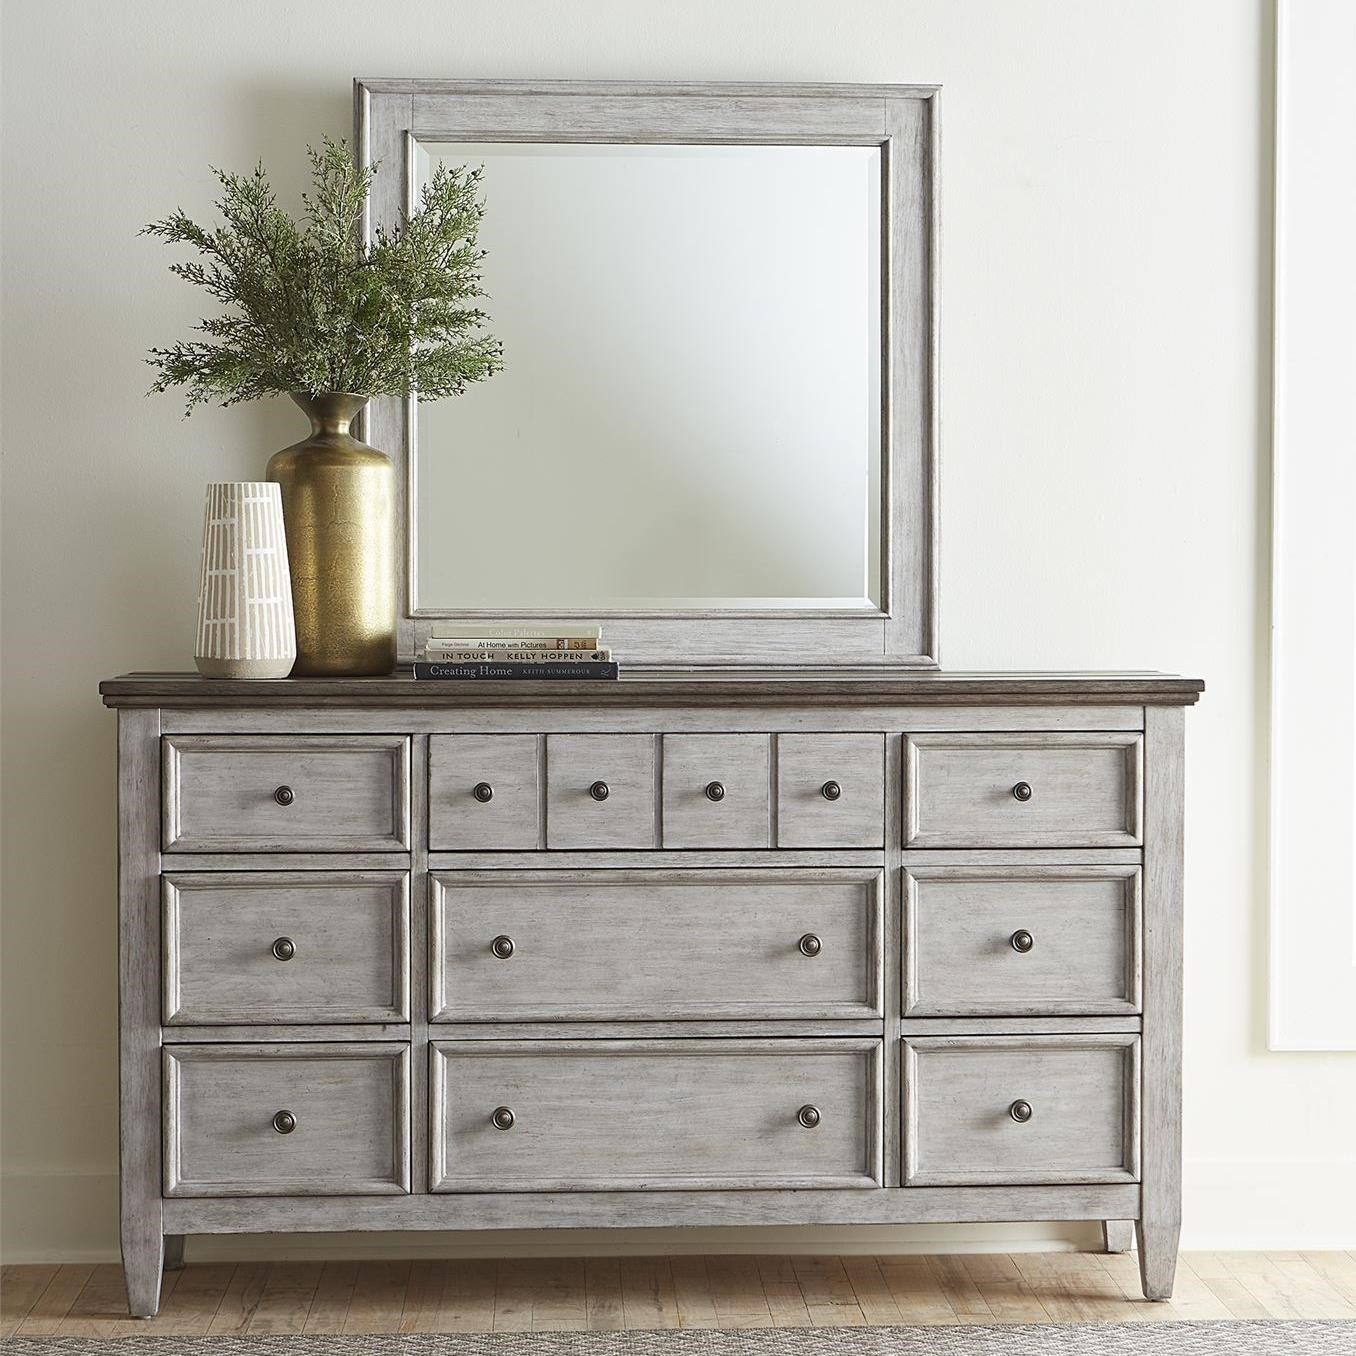 Heartland 9 Drawer Dresser and Mirror by Liberty Furniture at Northeast Factory Direct